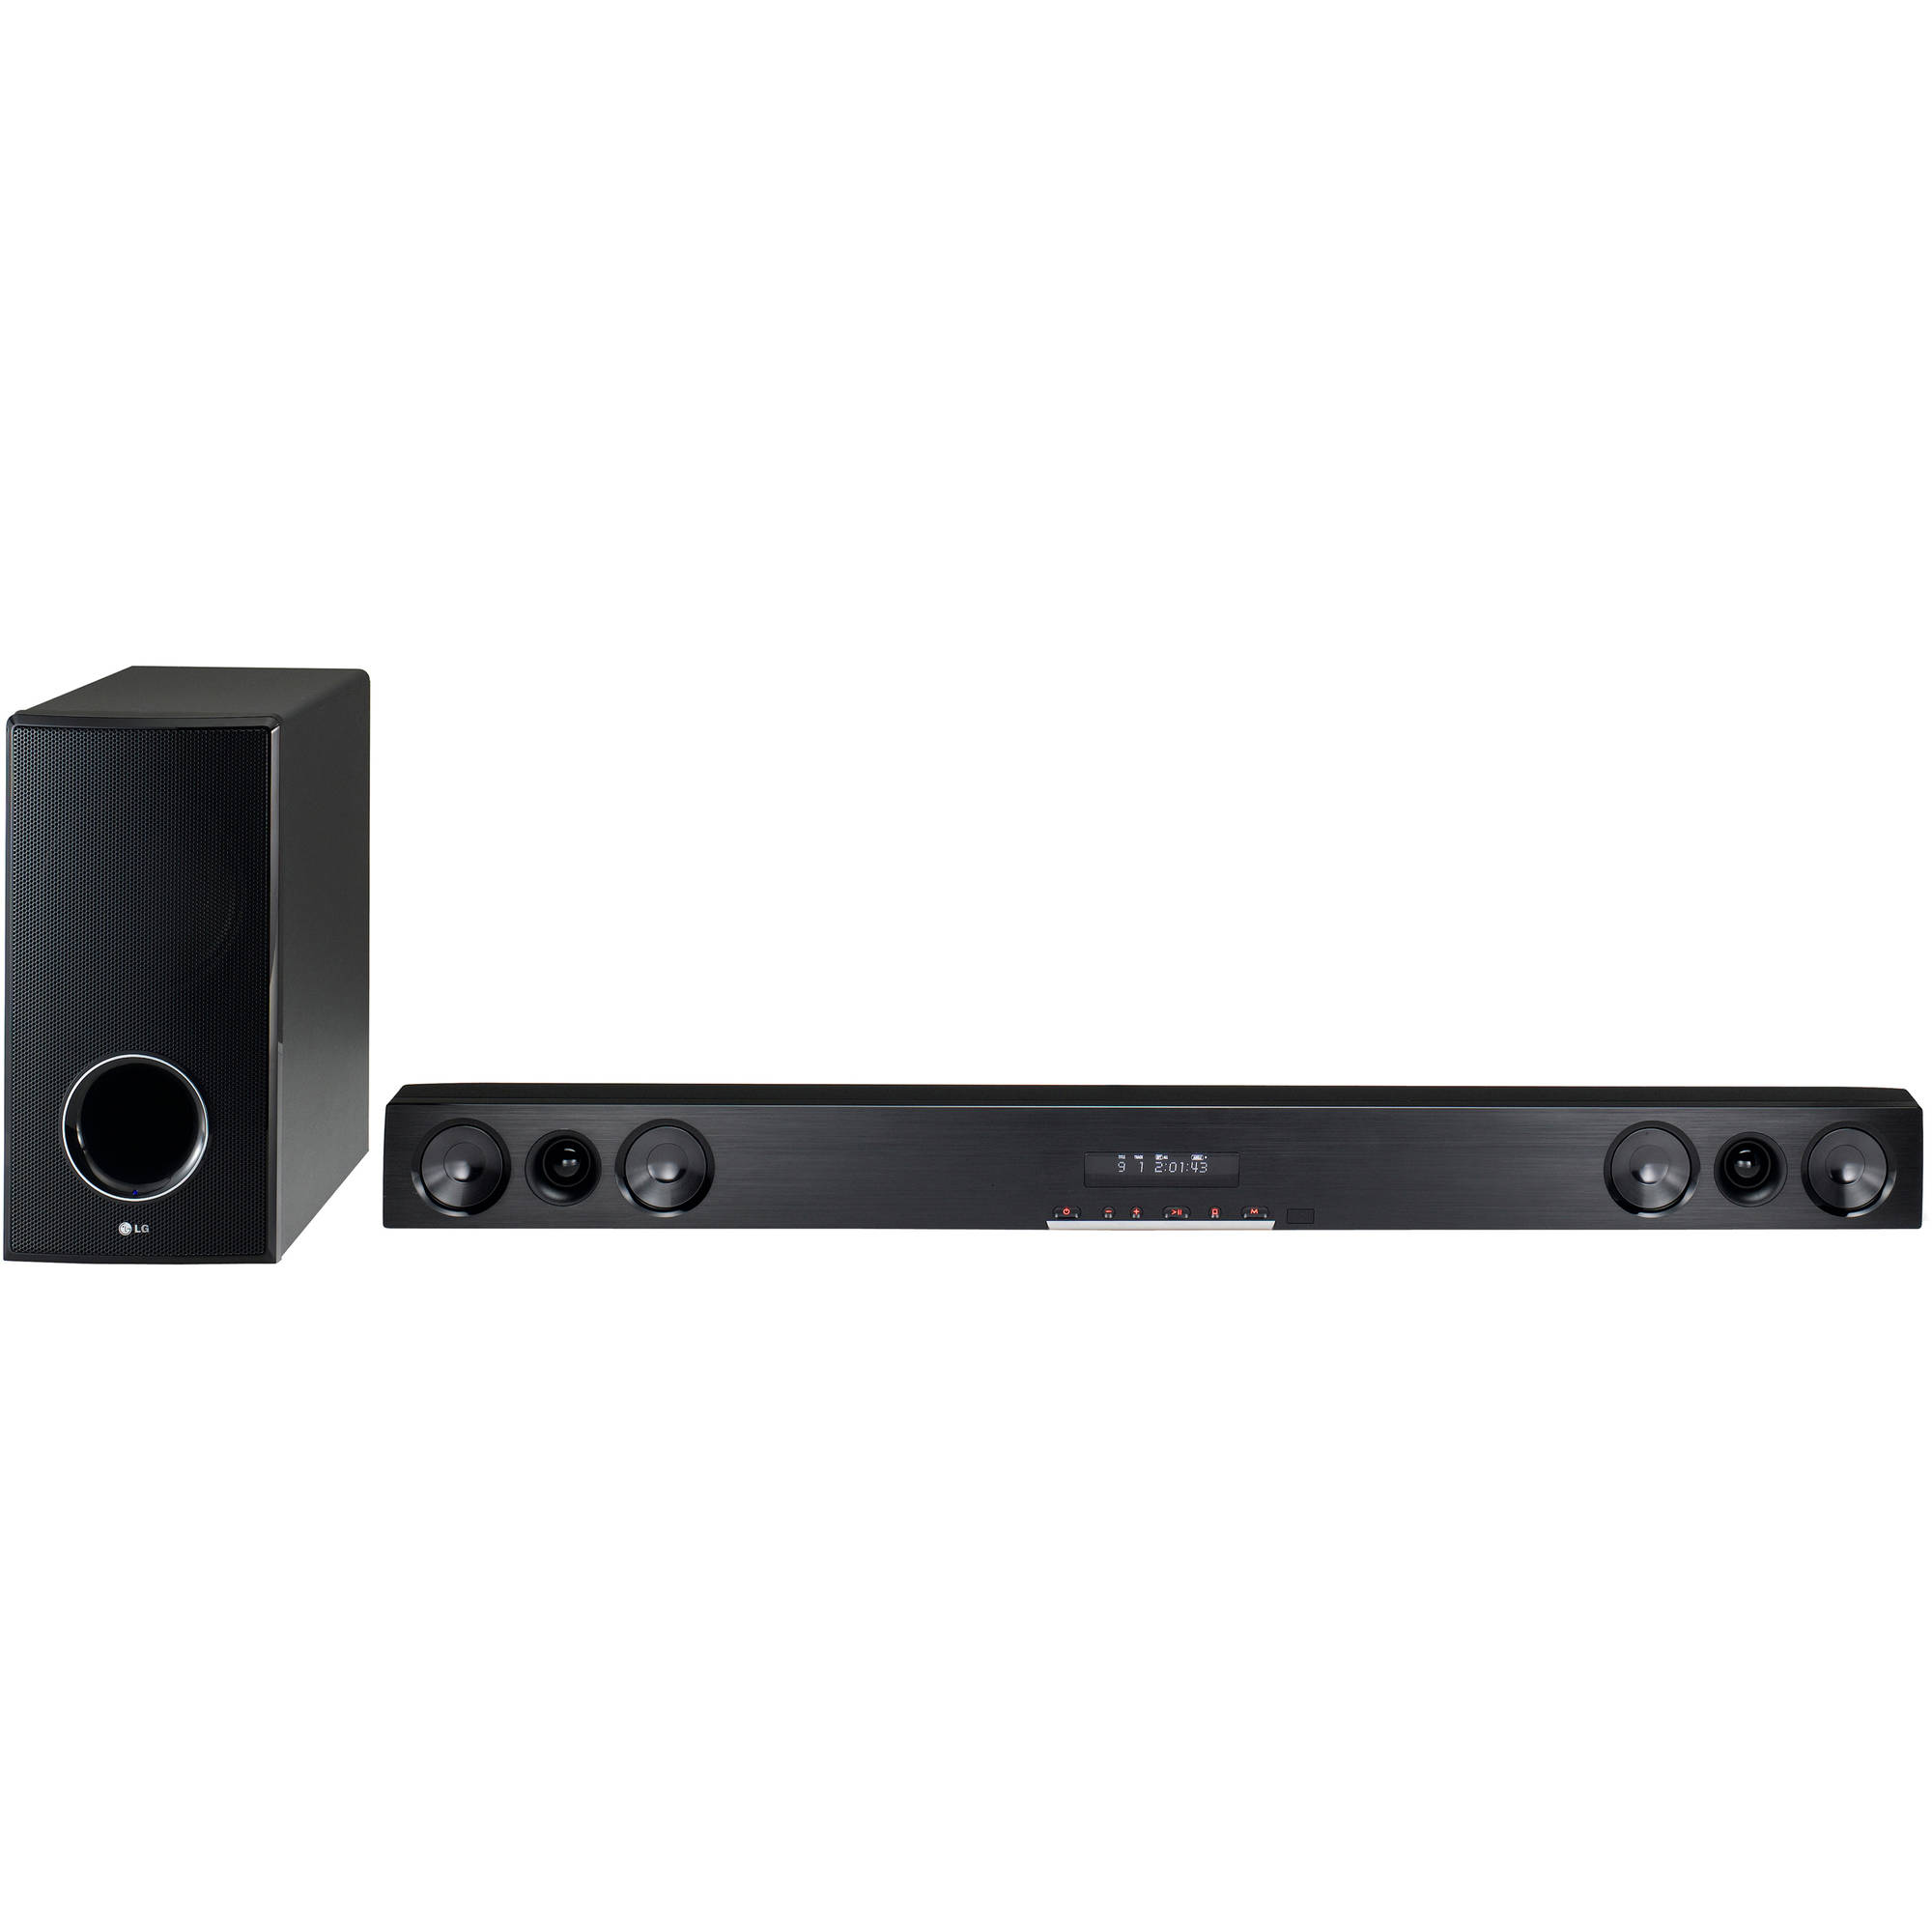 Lg Lsb316 280w Sound Bar With Wireless Subwoofer And Bluetooth